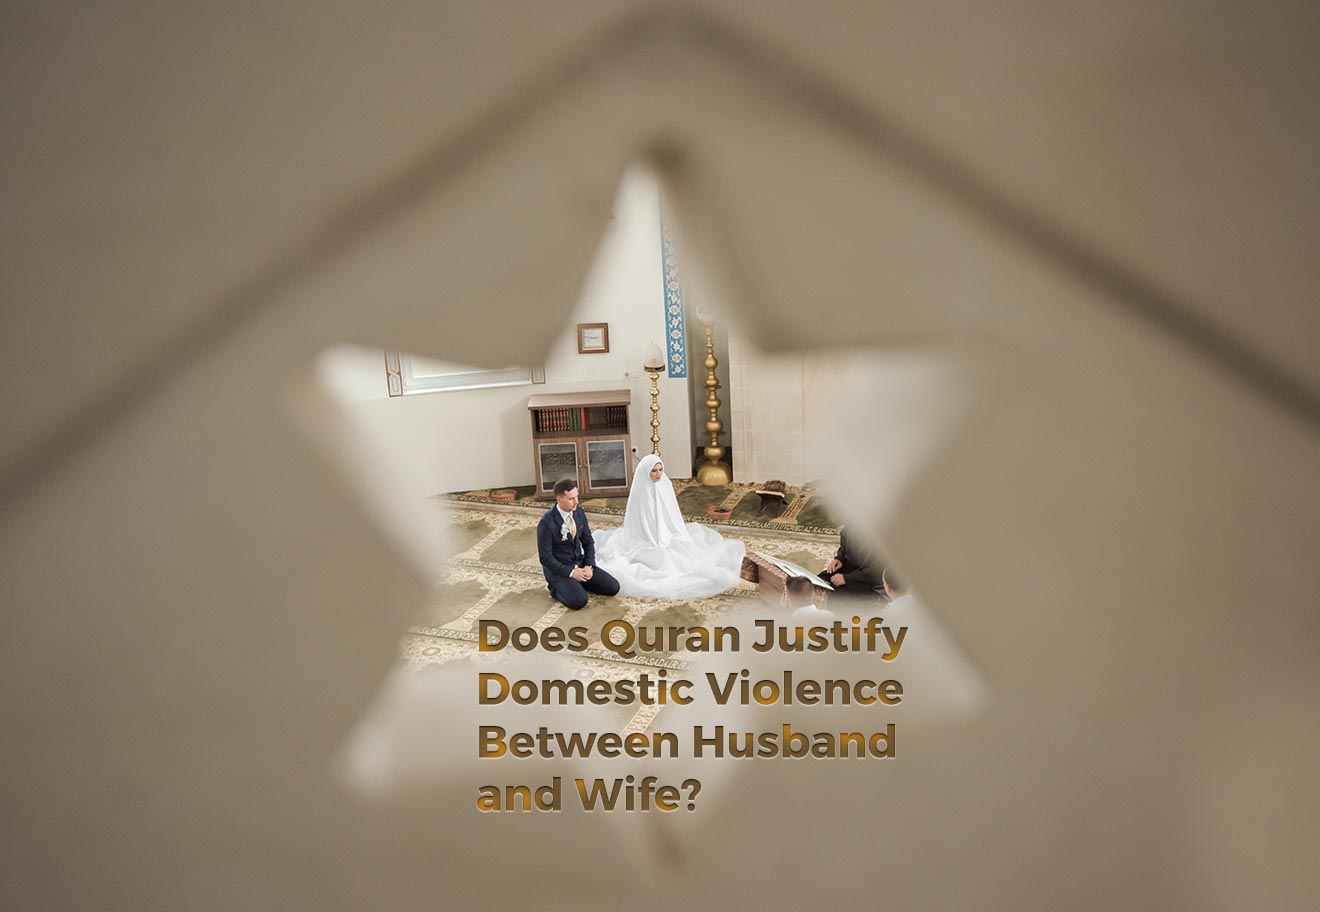 Does Quran Justify Domestic Violence Between Husband and Wife